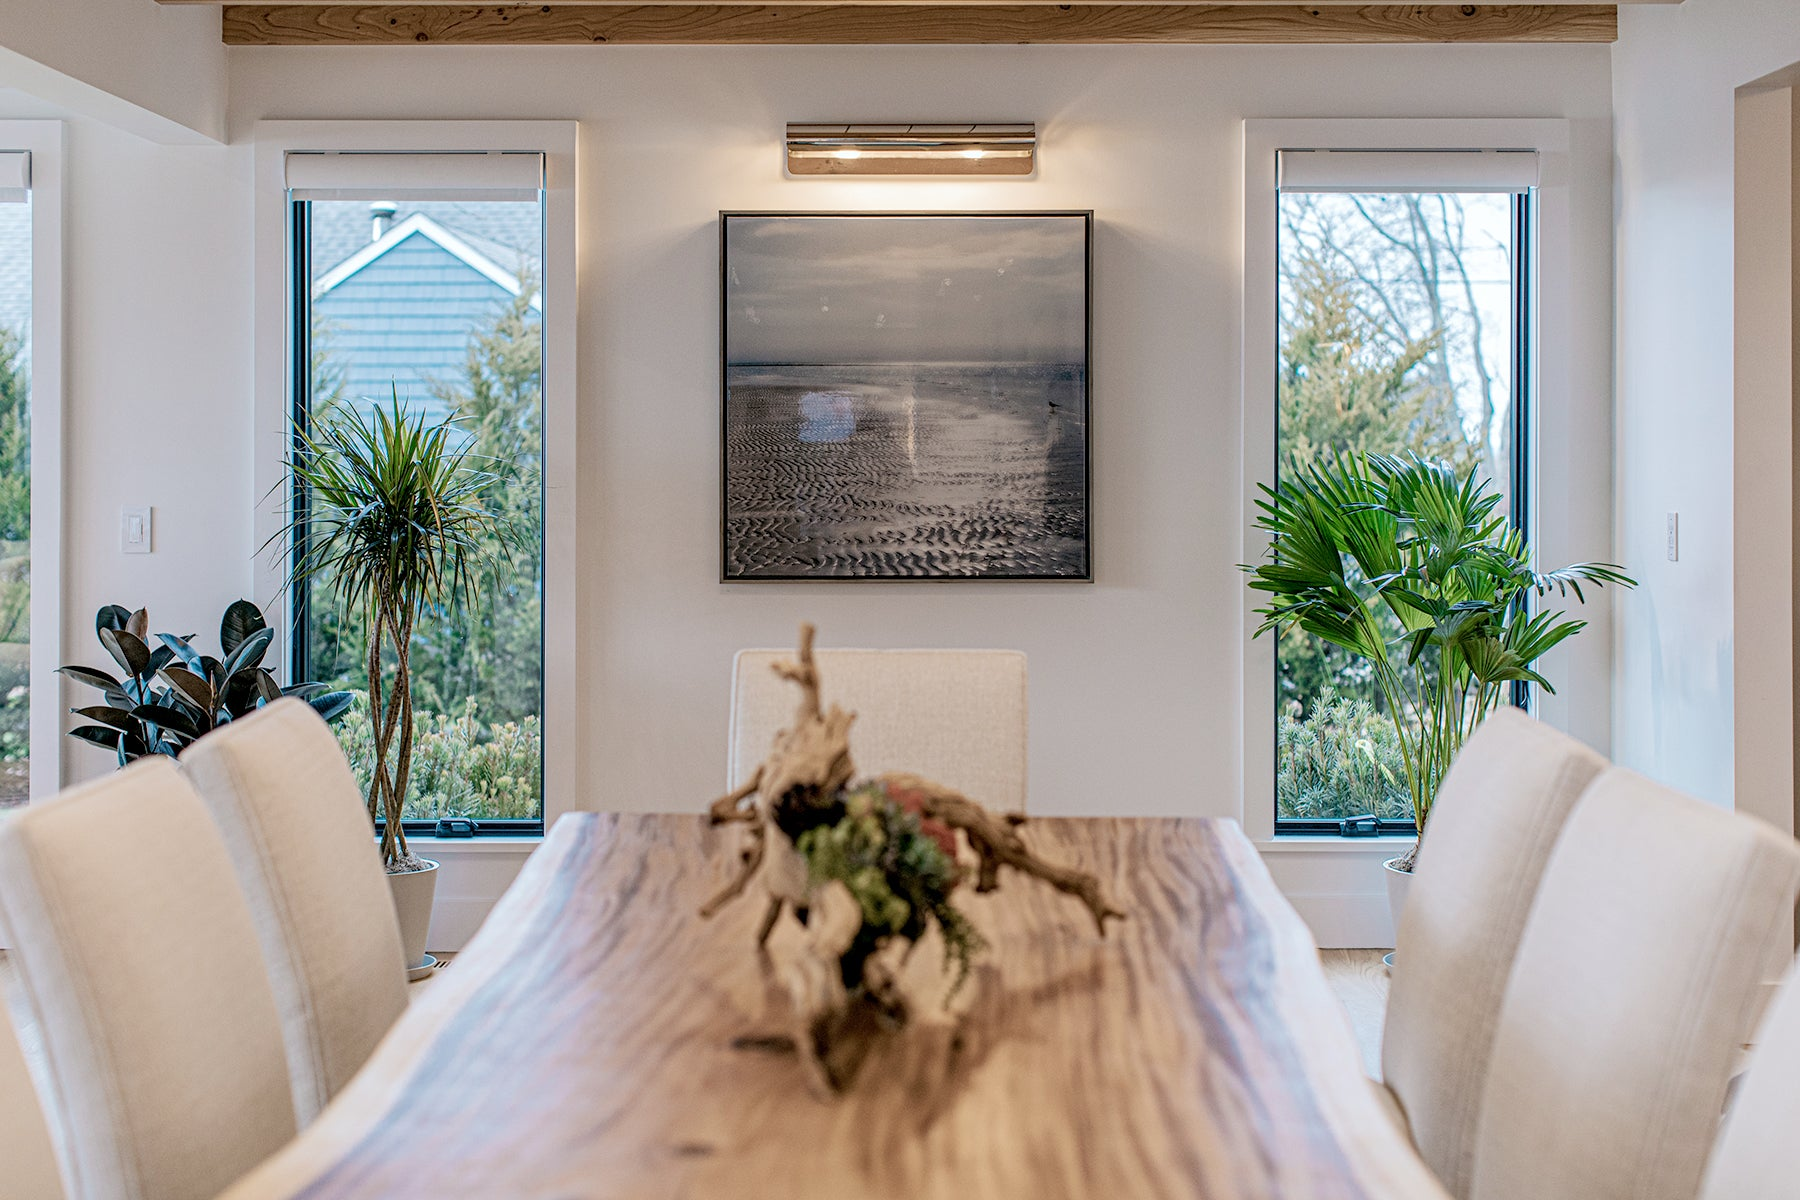 Ocean Blu Designs - Dining Room - Modern Coastal and Transitional Designs for New York, Long Island, Connecticut, Hamptons, and Florida. Interior Designers